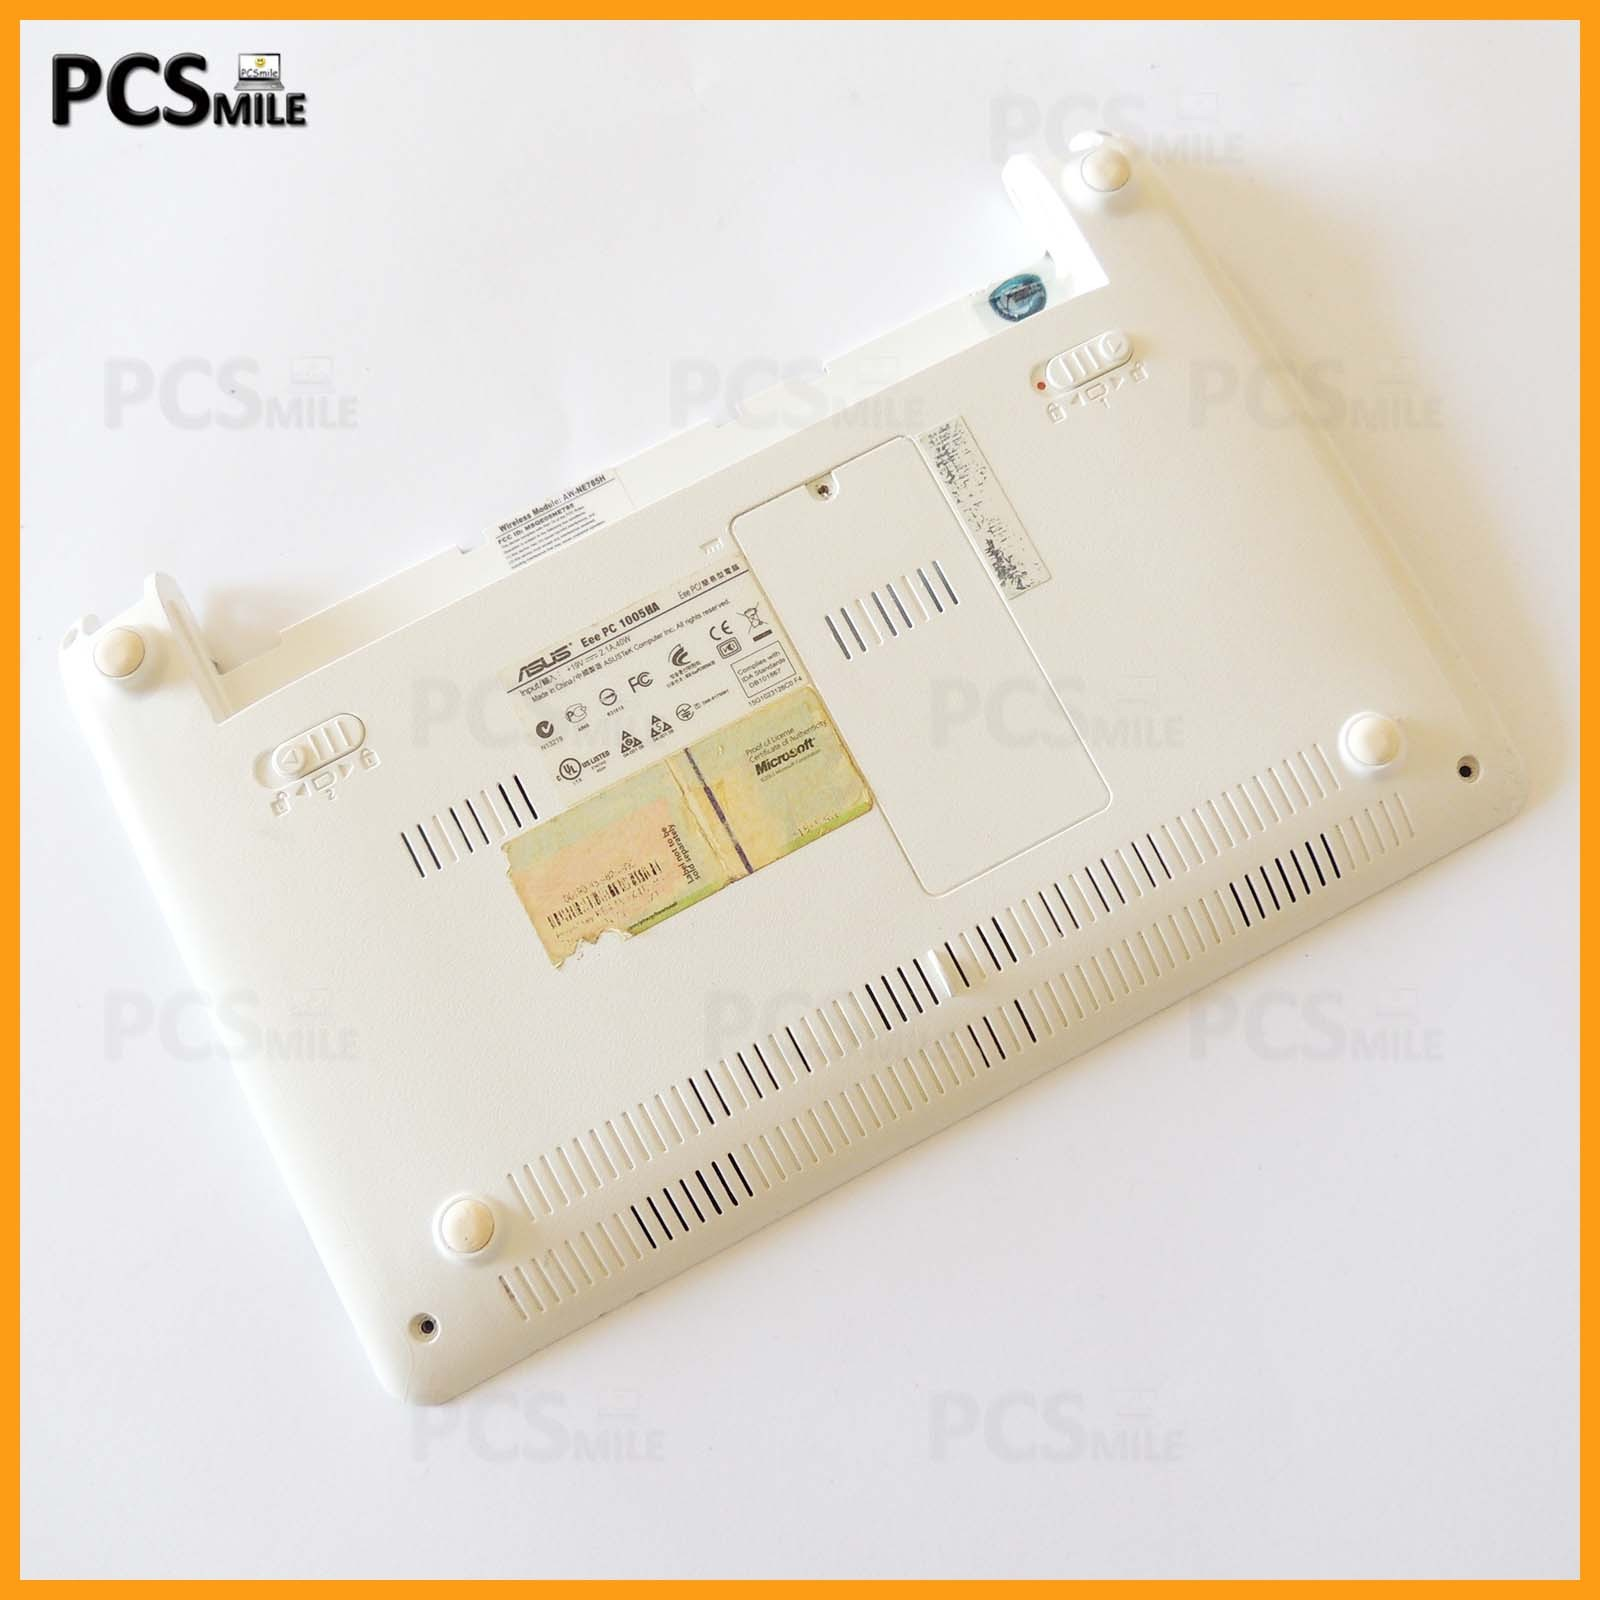 Scocca posteriore Asus Eee PC 1005HA + speaker casse audio